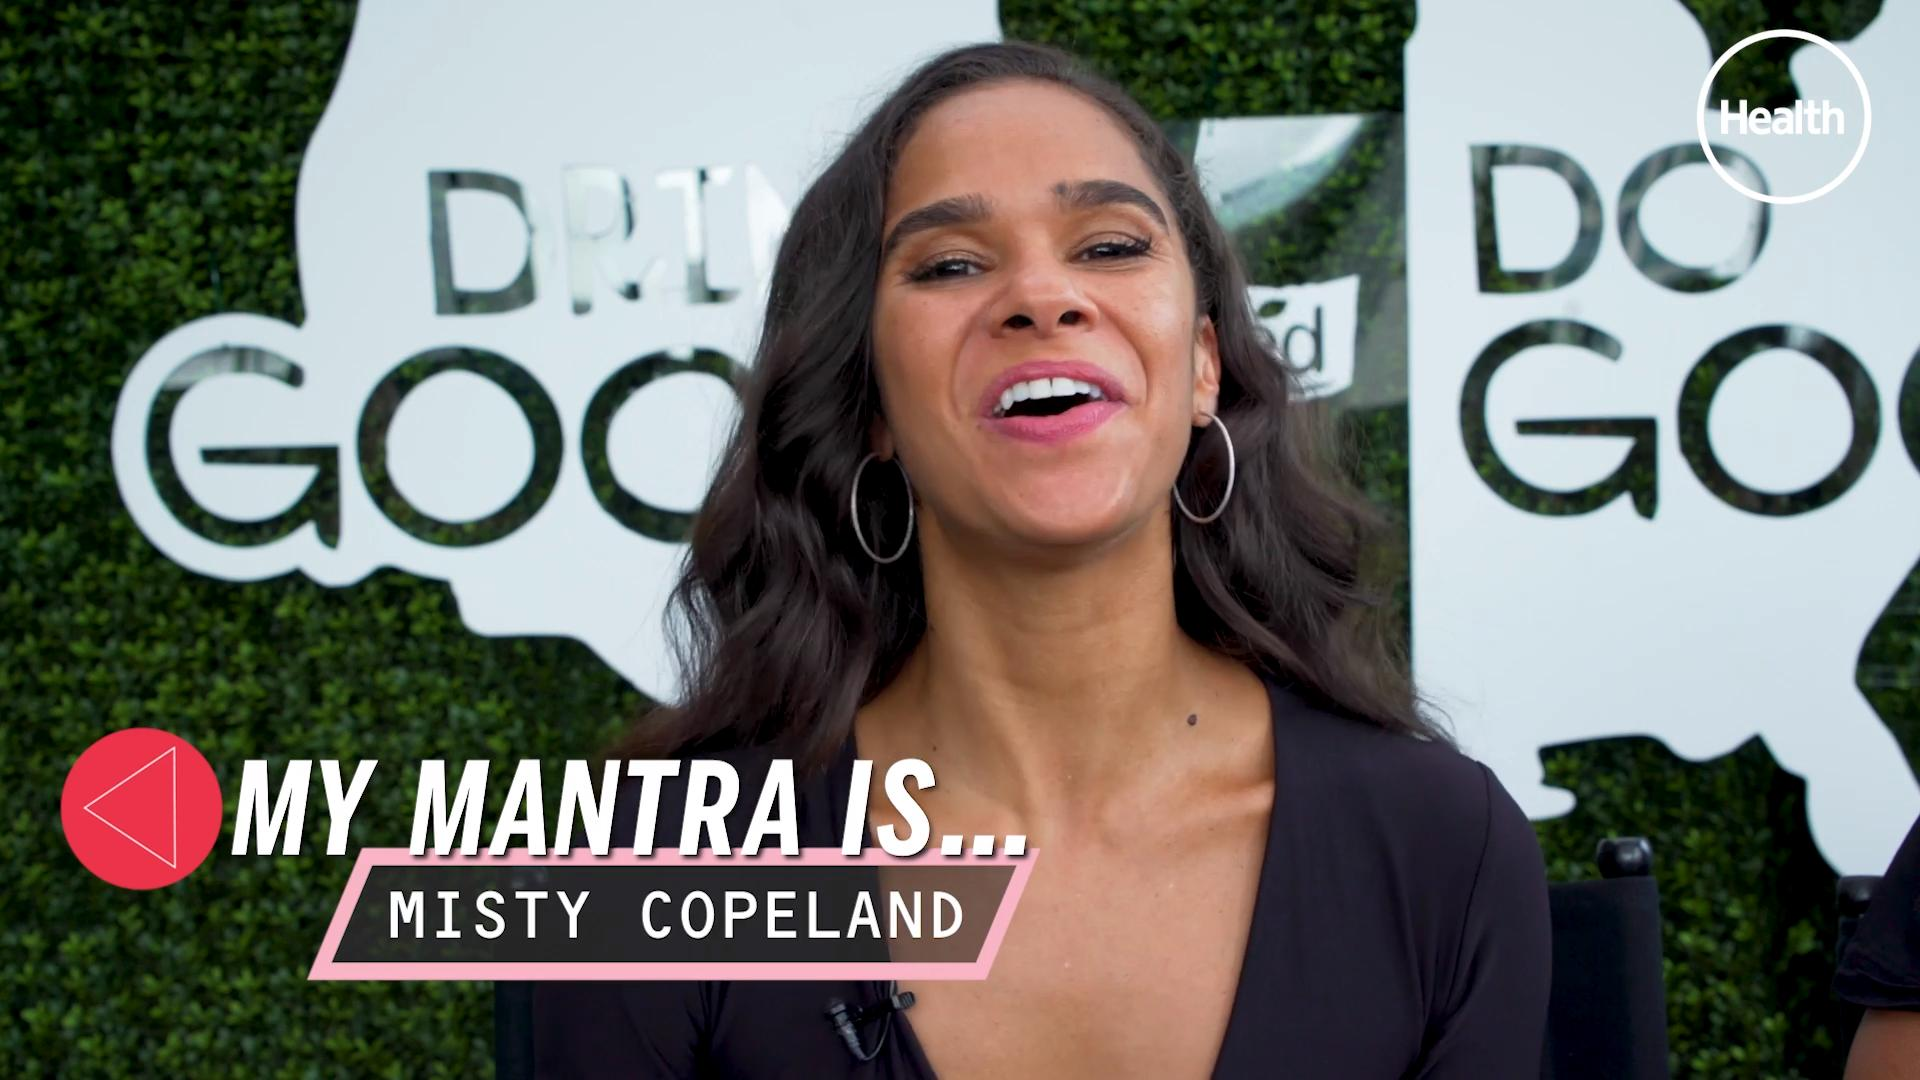 4 Exercises to Steal From Misty Copeland for a Strong Ballerina Body